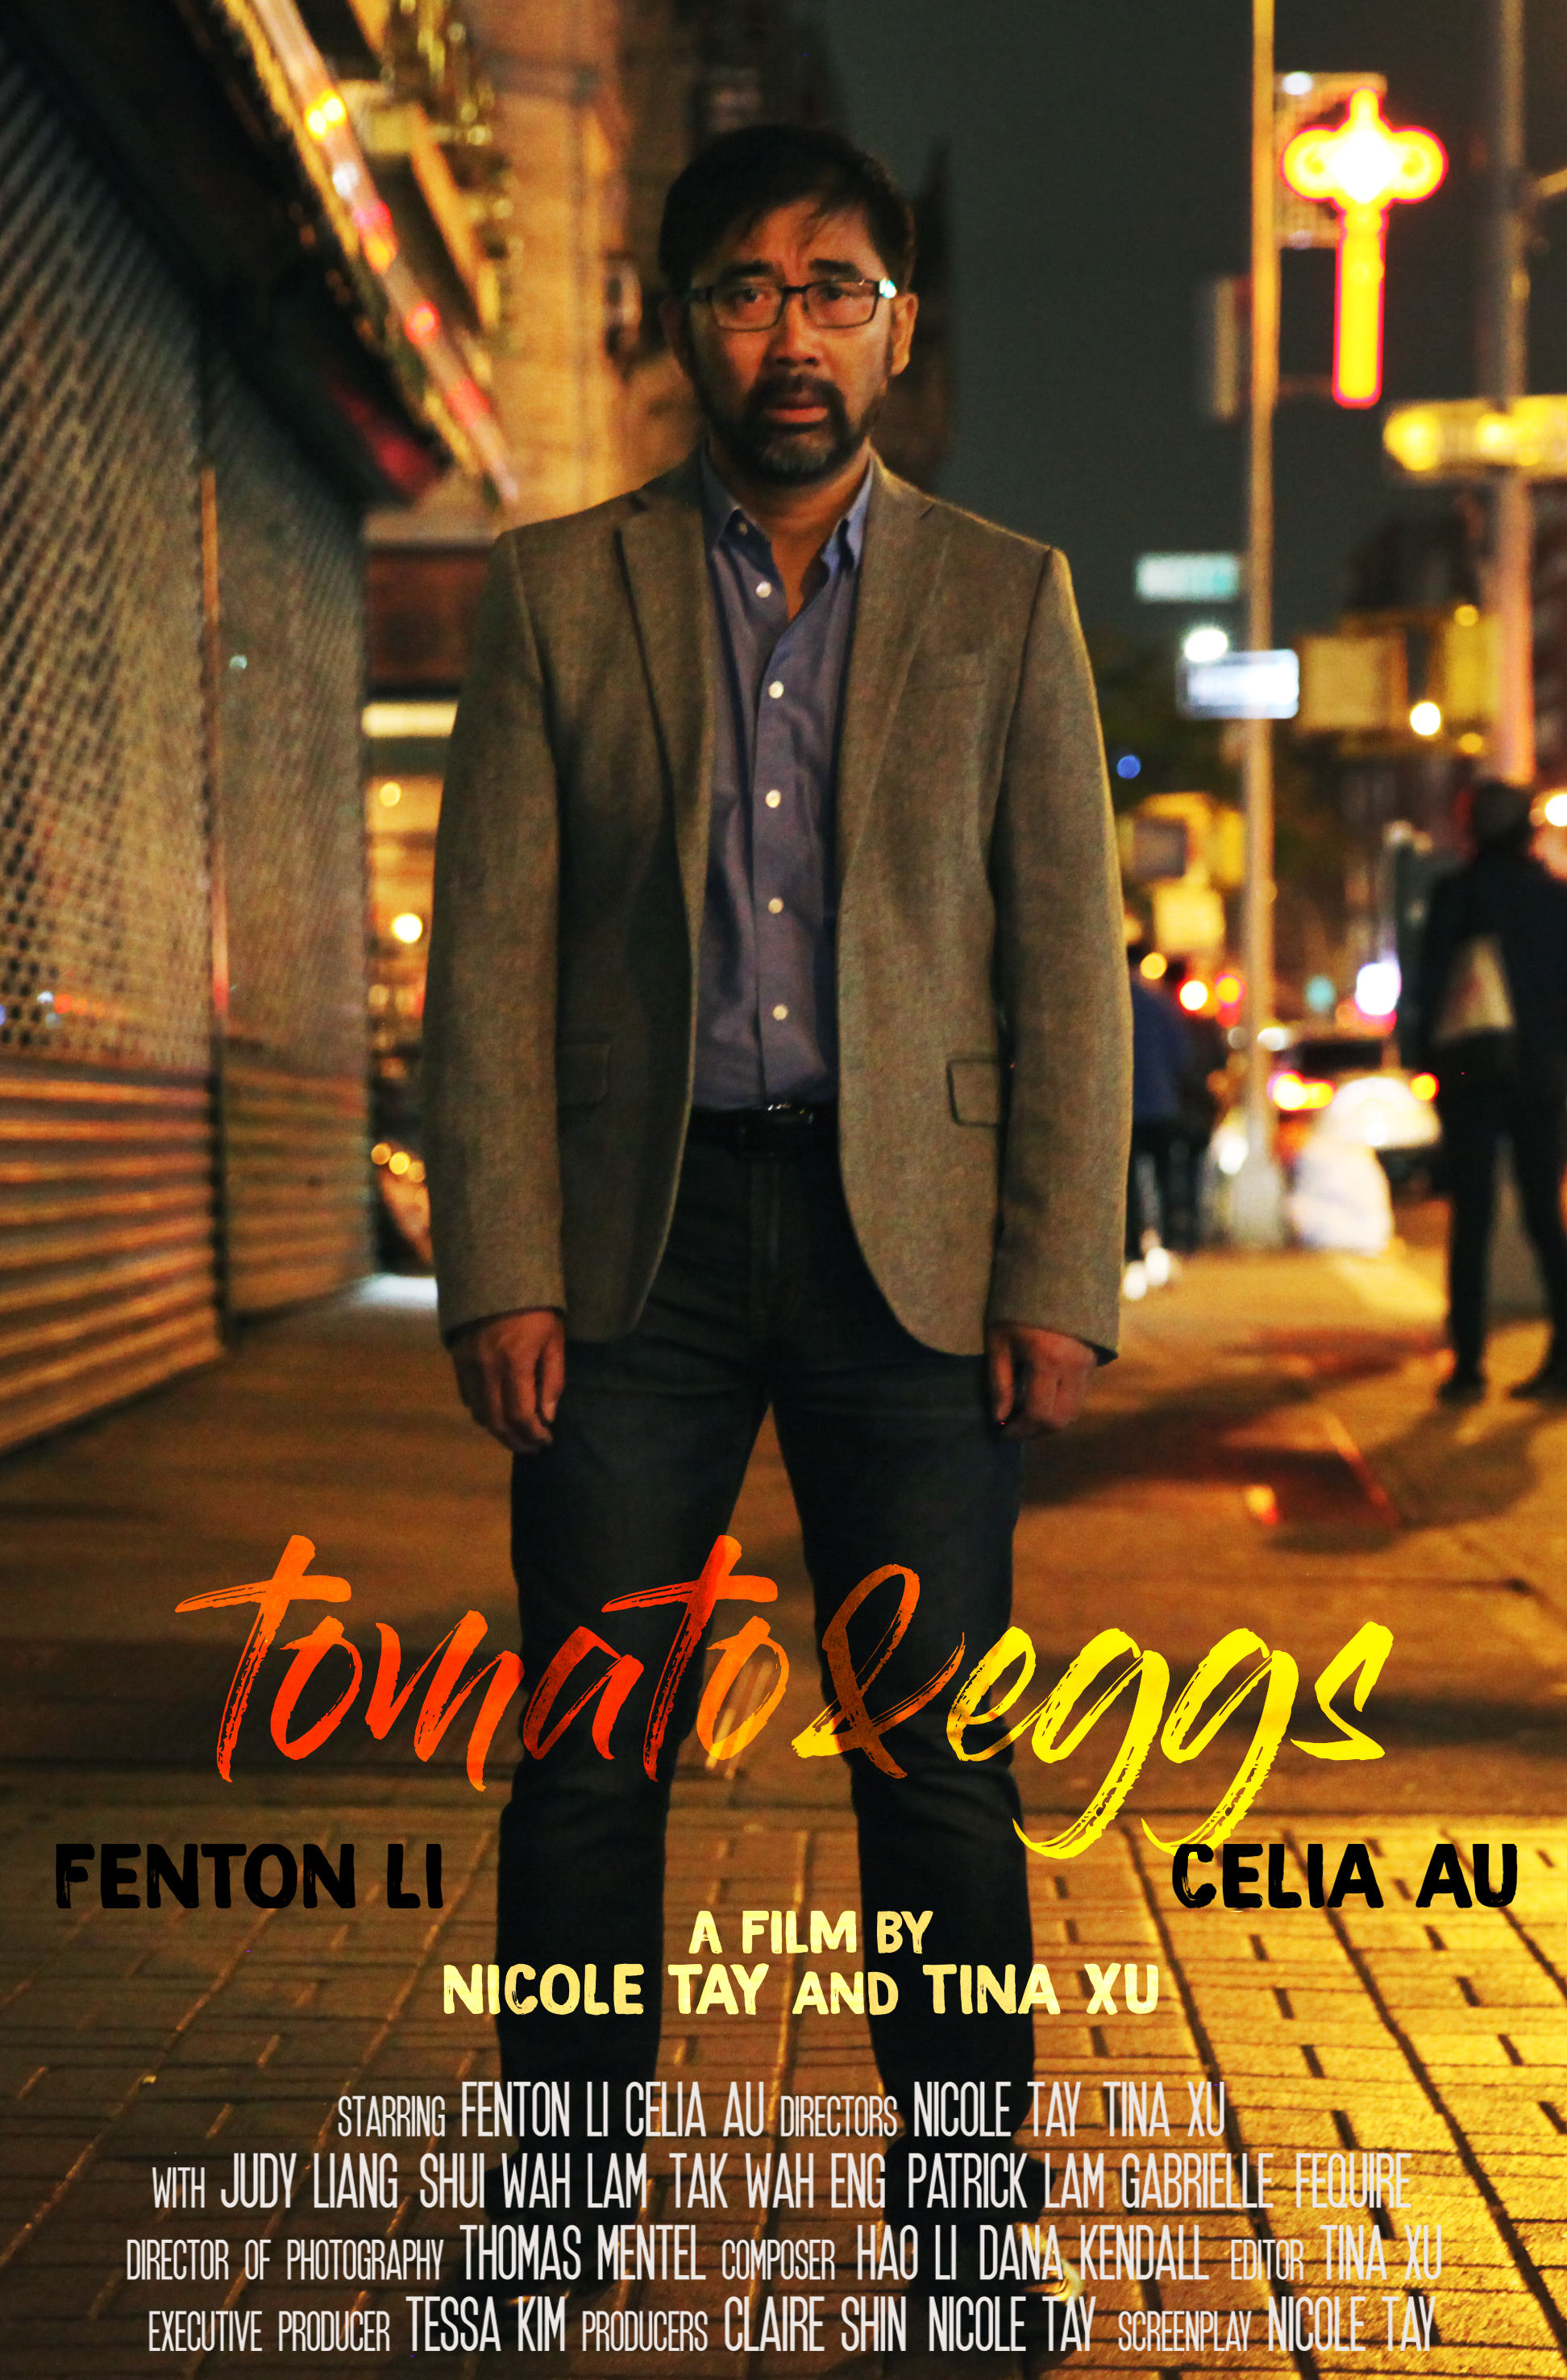 tomato and eggs poster 2.jpg